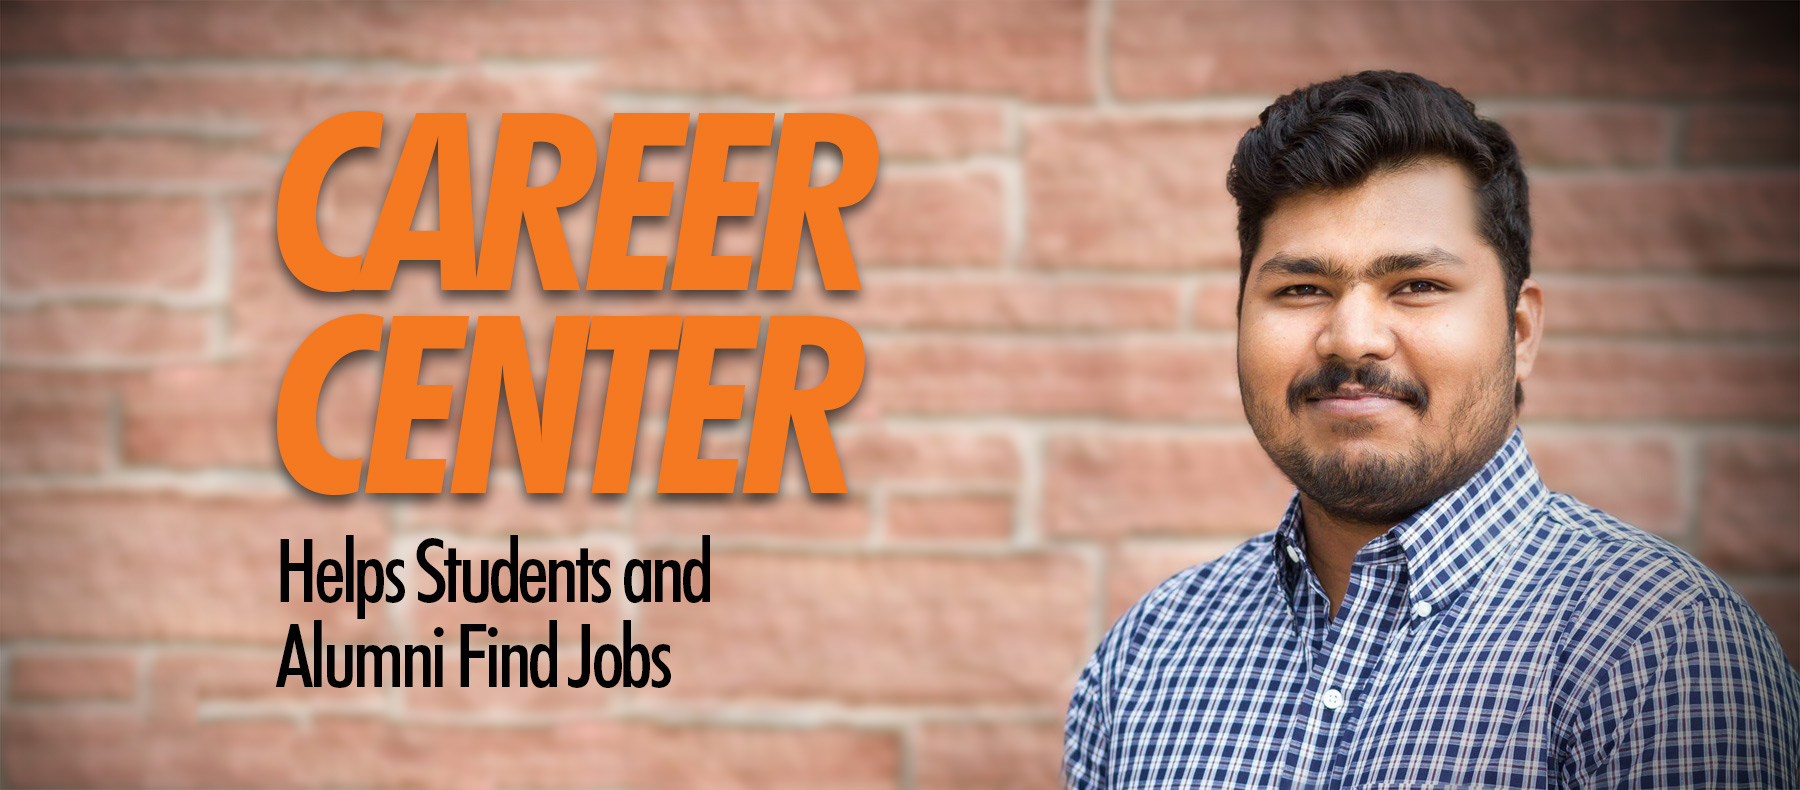 Career Center helps students and alumni find jobs